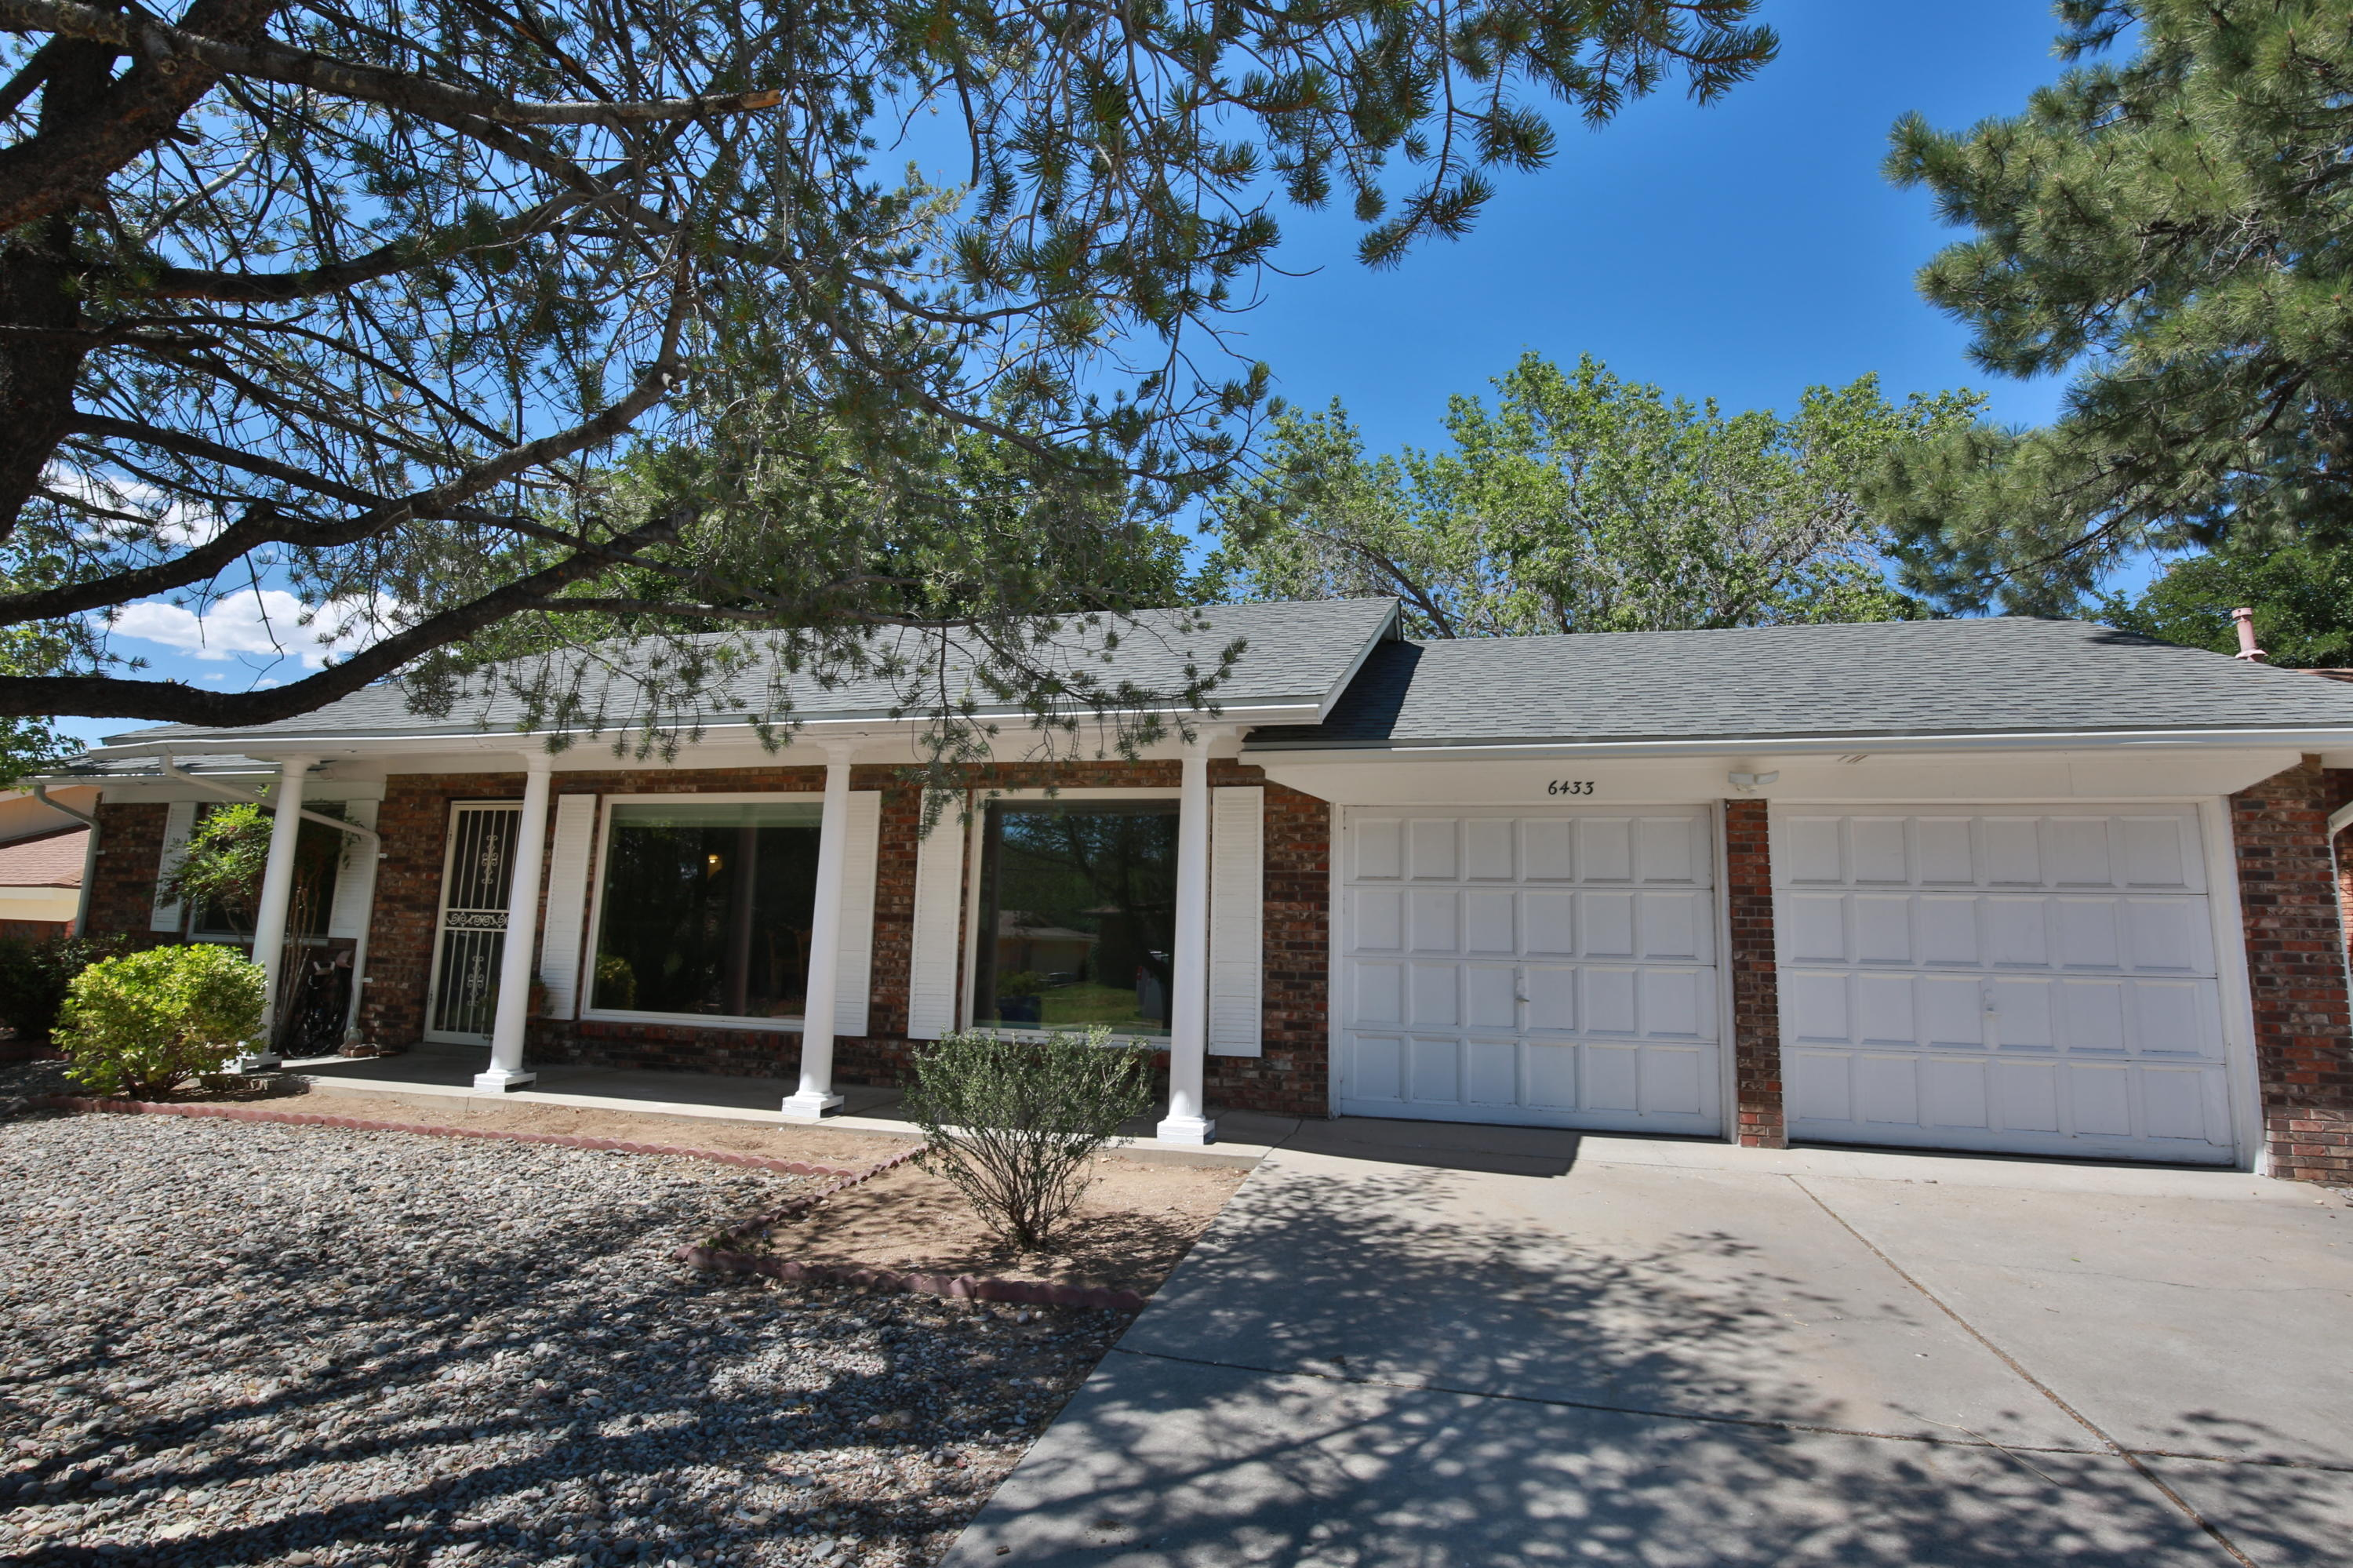 6433 CATHY Avenue NE Property Photo - Albuquerque, NM real estate listing